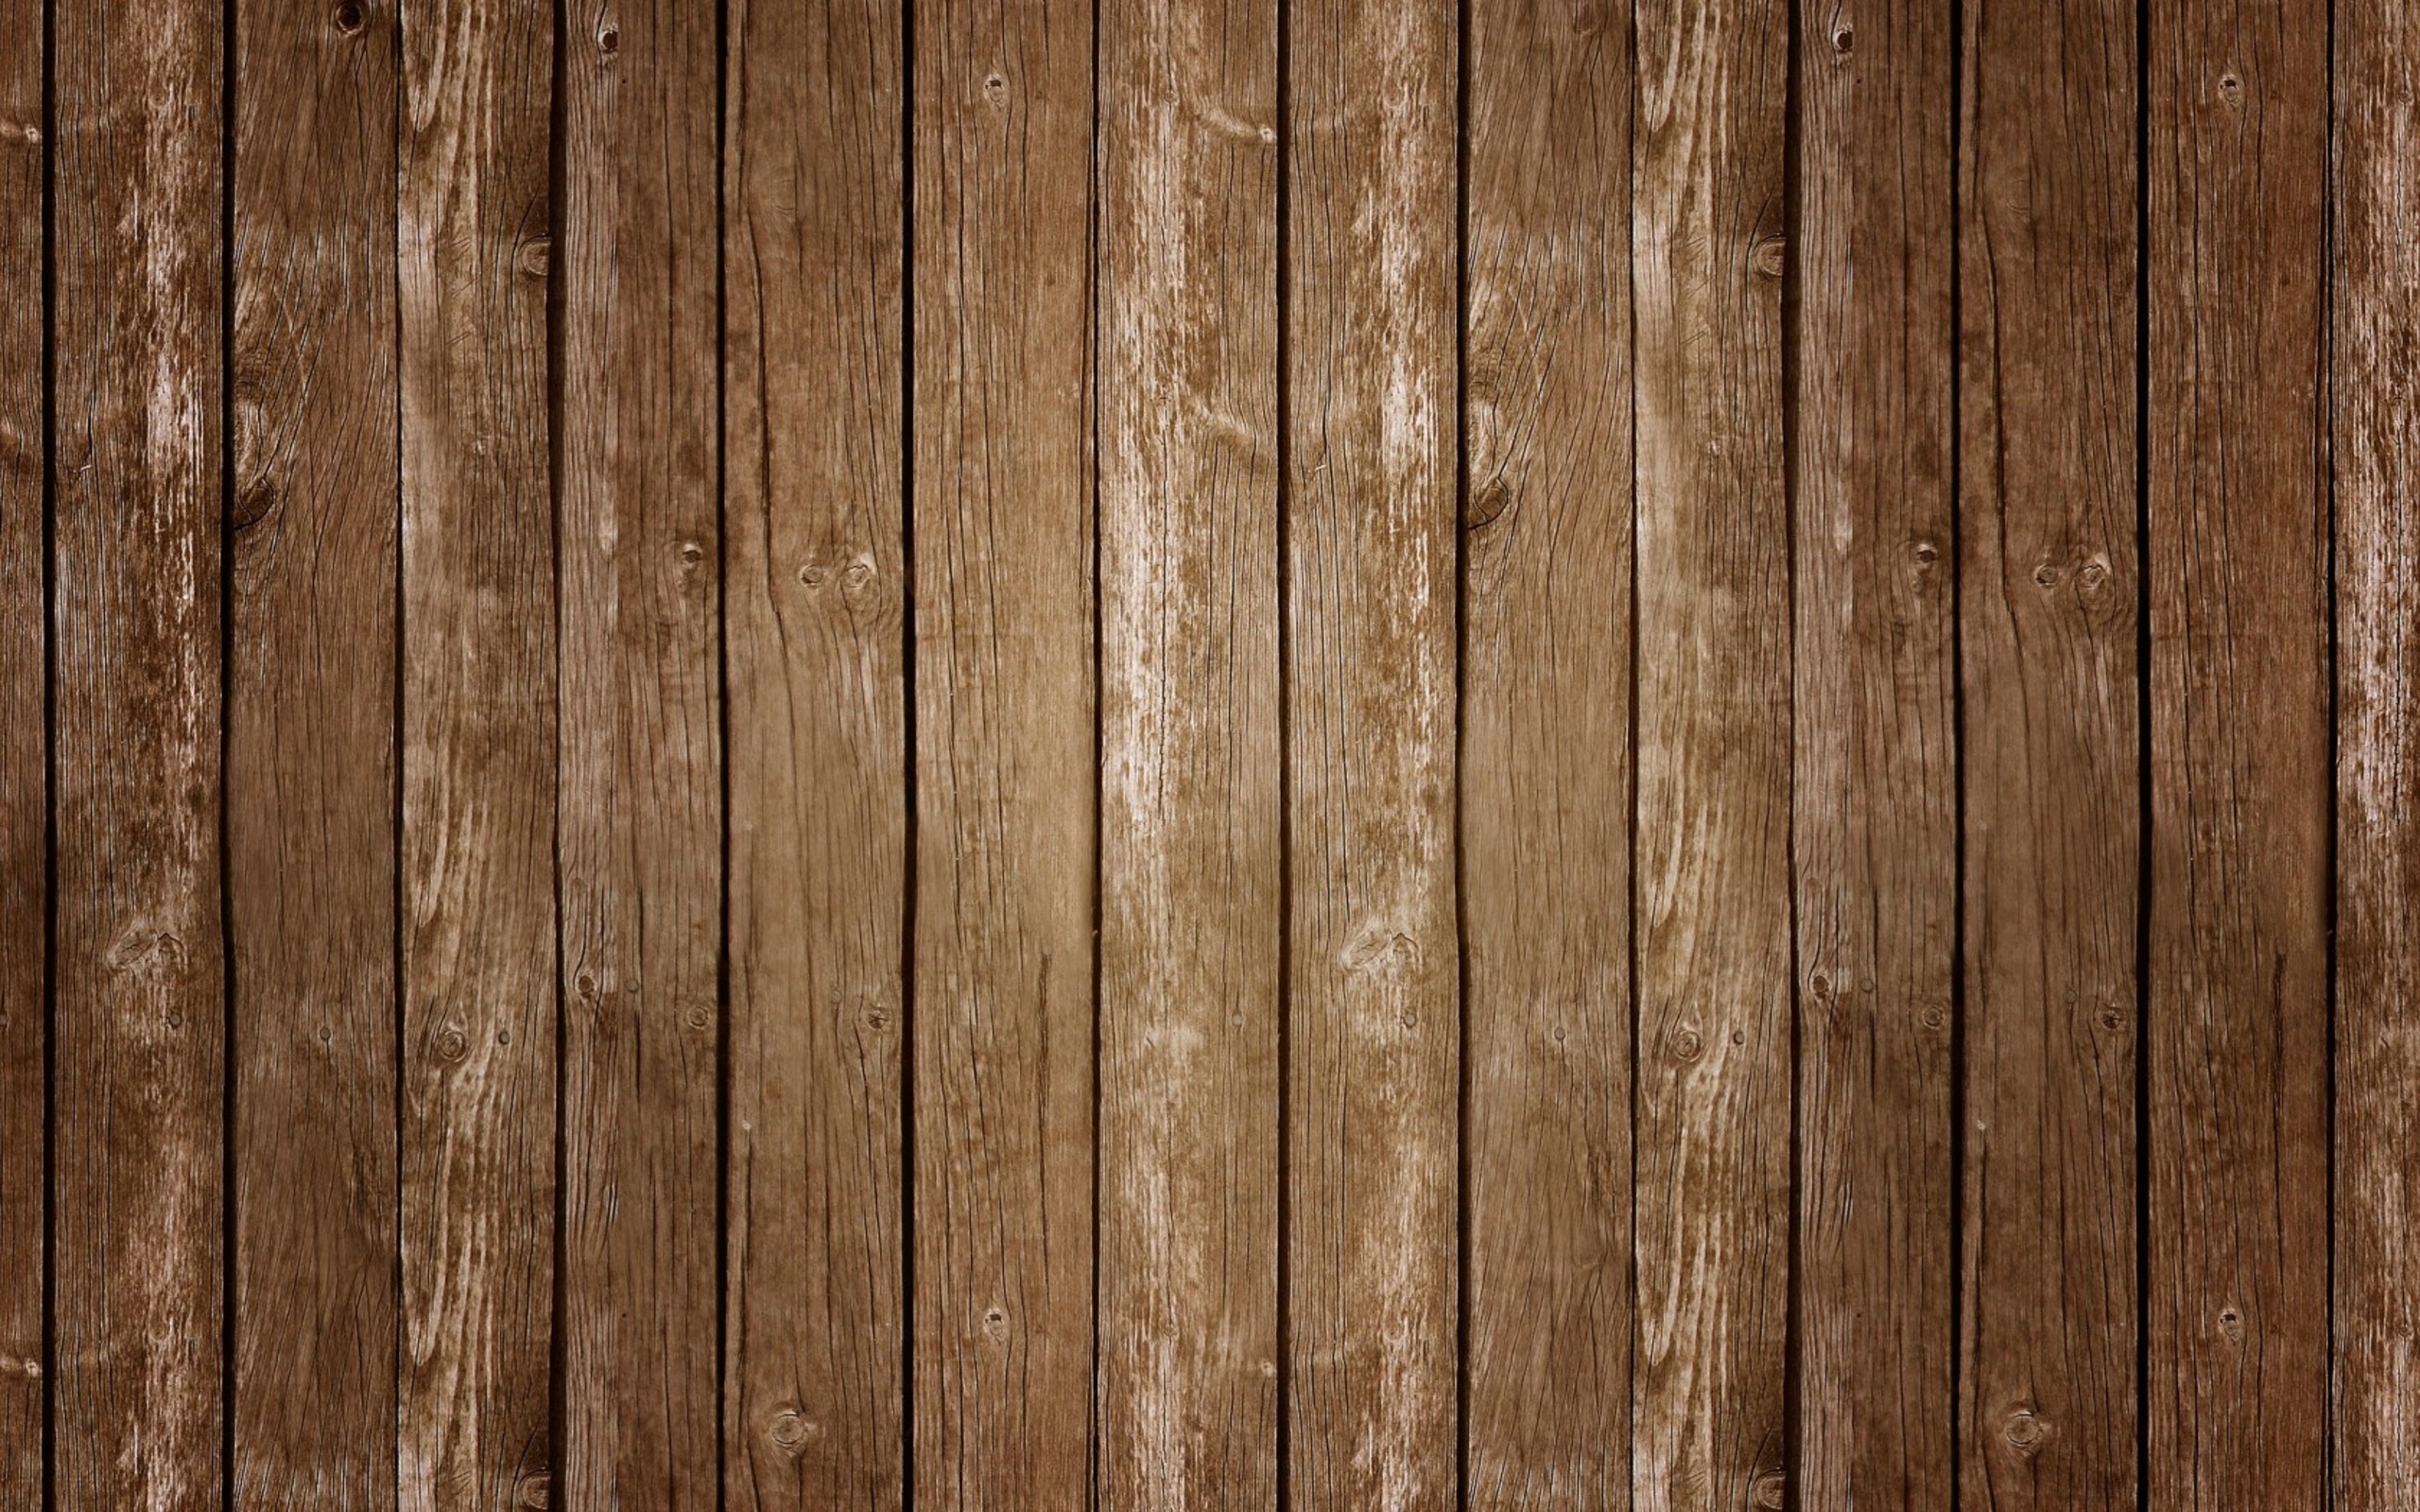 Pattern   Wood Pattern Wallpaper. Wood Full HD Wallpaper and Background   2560x1600   ID 370799